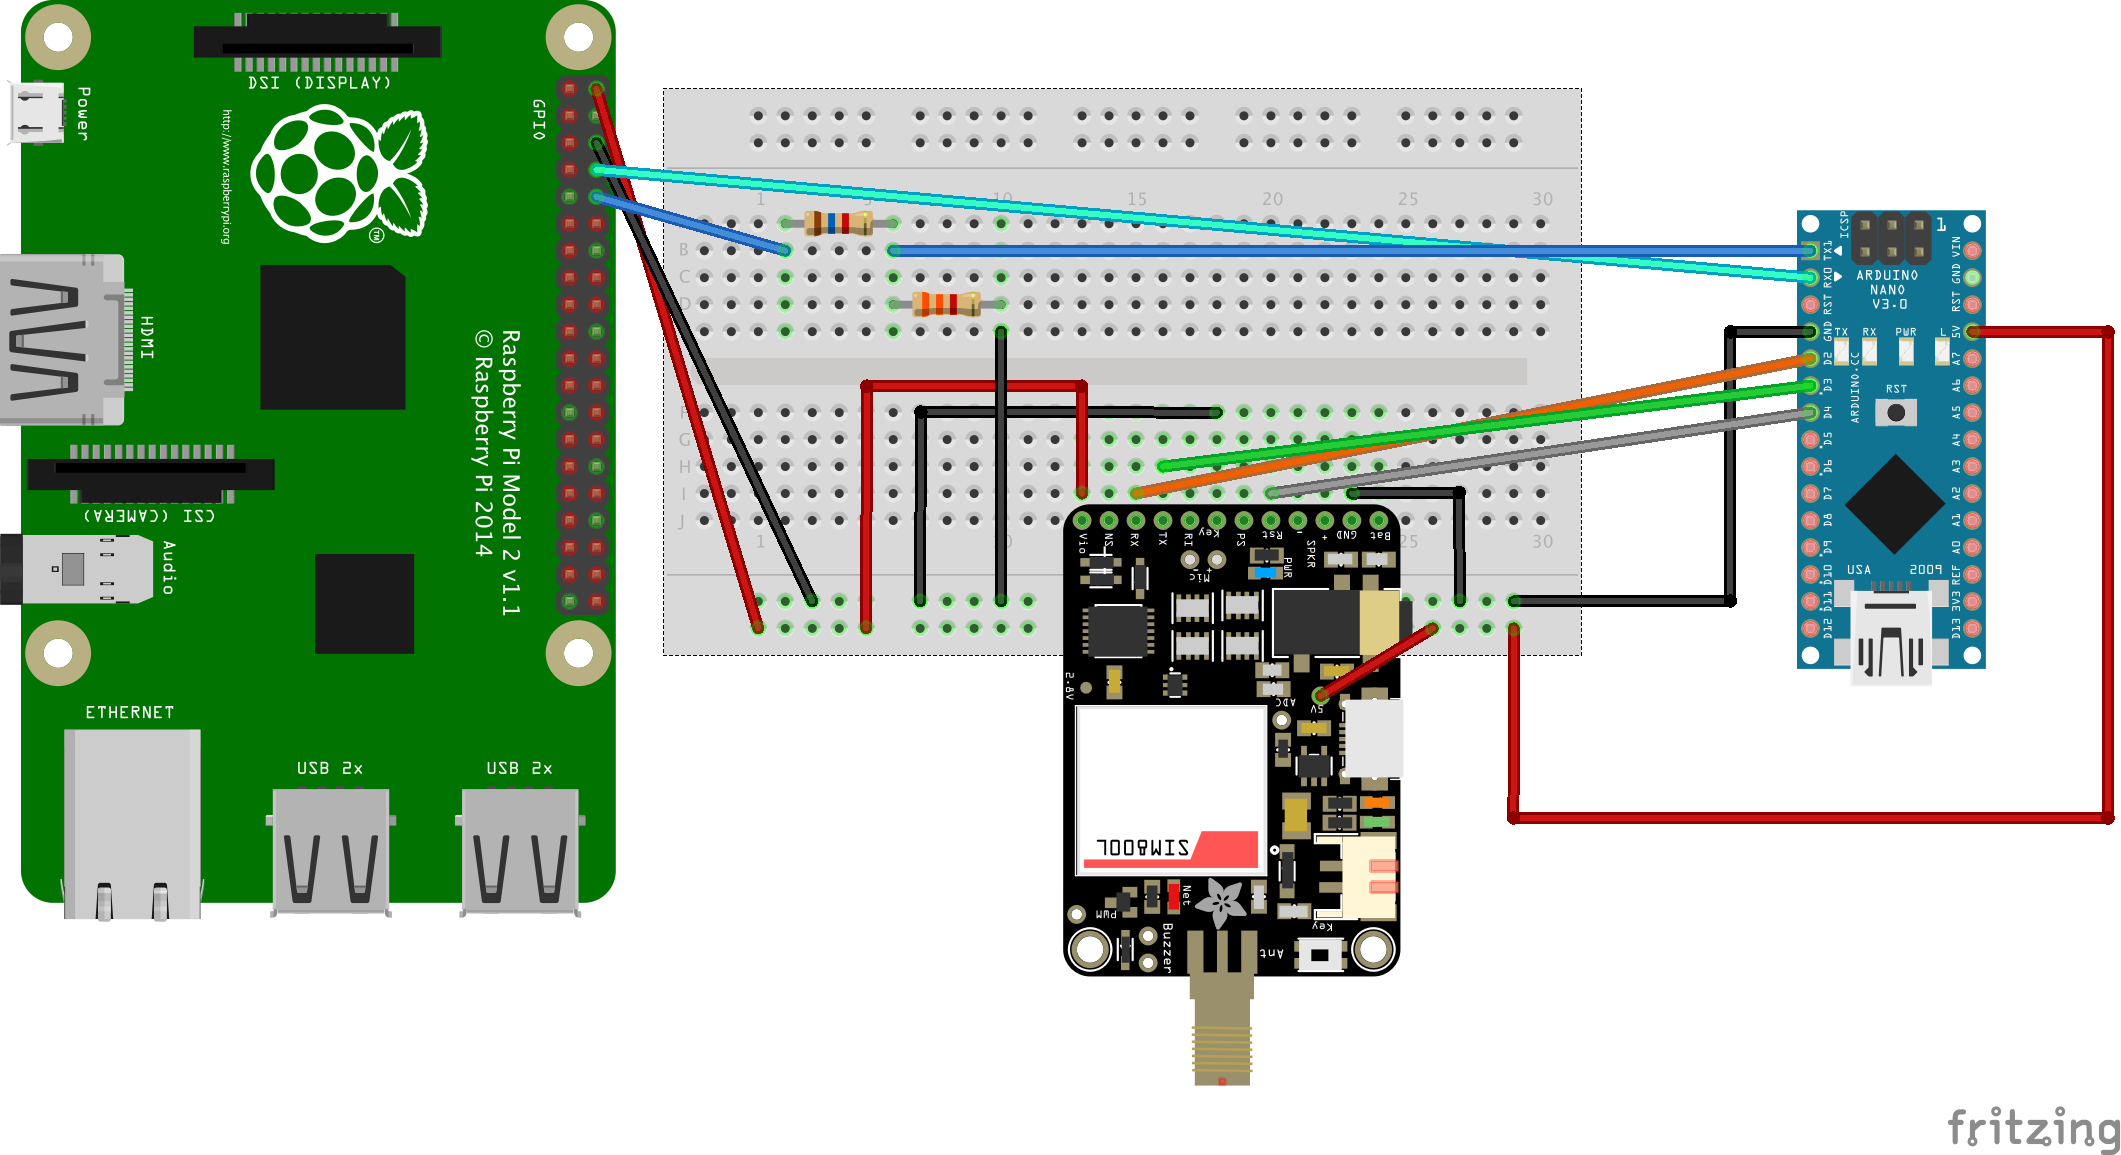 Samy Kamkar Proxygambit Anonymize Net Over Gsm Or Ptp Link Wiring Diagram Arduino Along With Wireless Router Connection